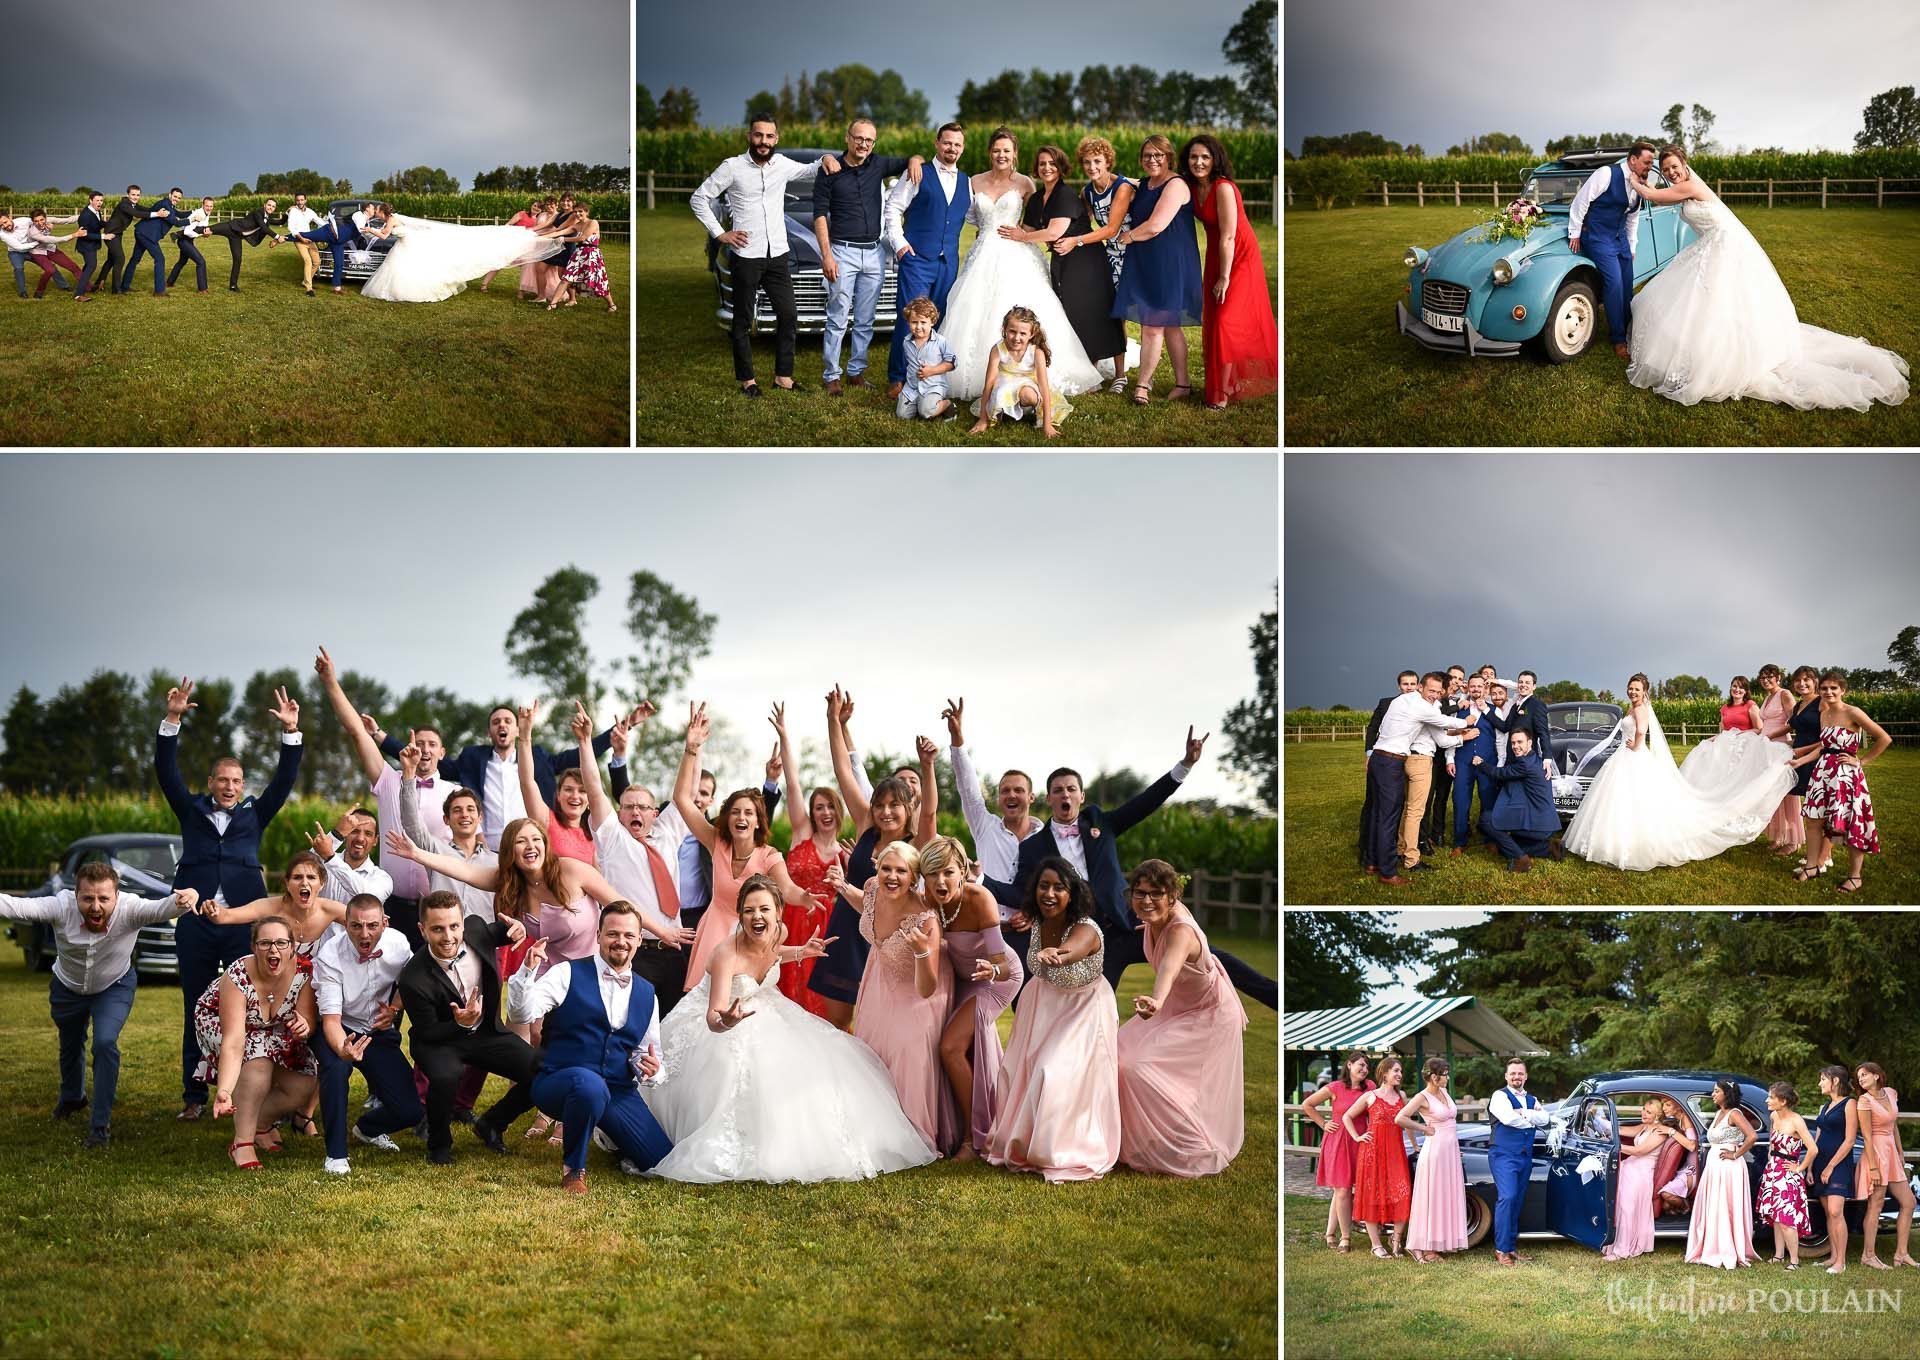 Mariage cool ferme weyerbach - Valentine Poulain groupes